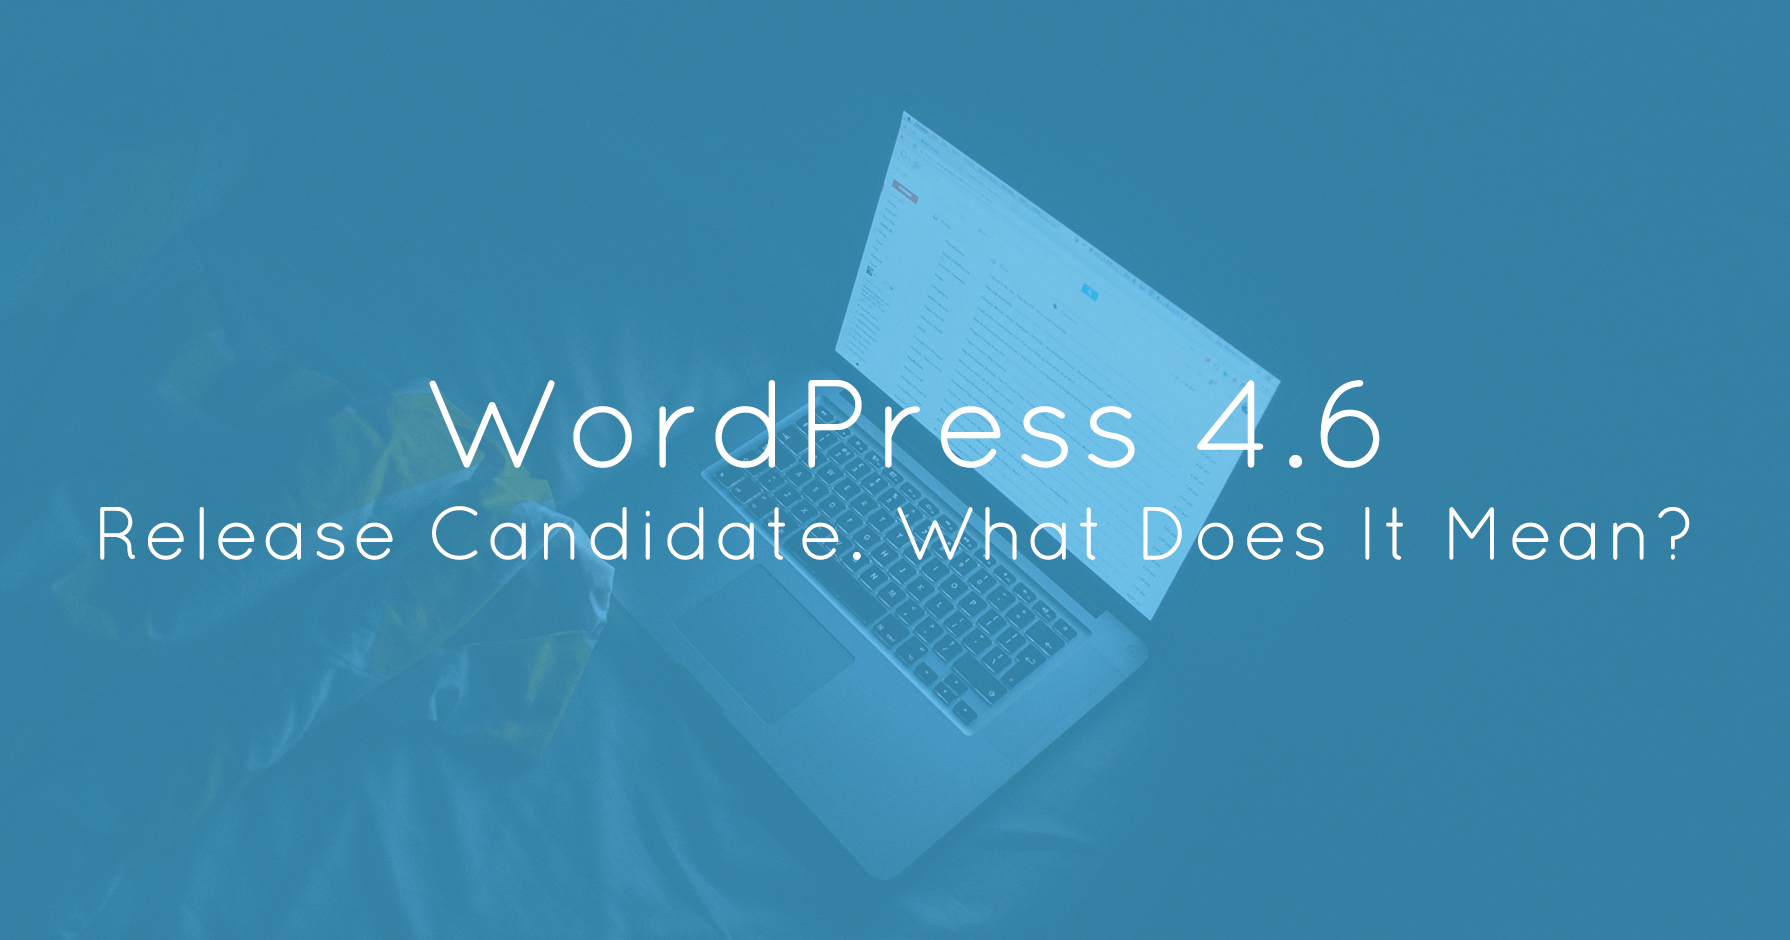 WordPress 4.6 Release Candidate. What Does It Mean?